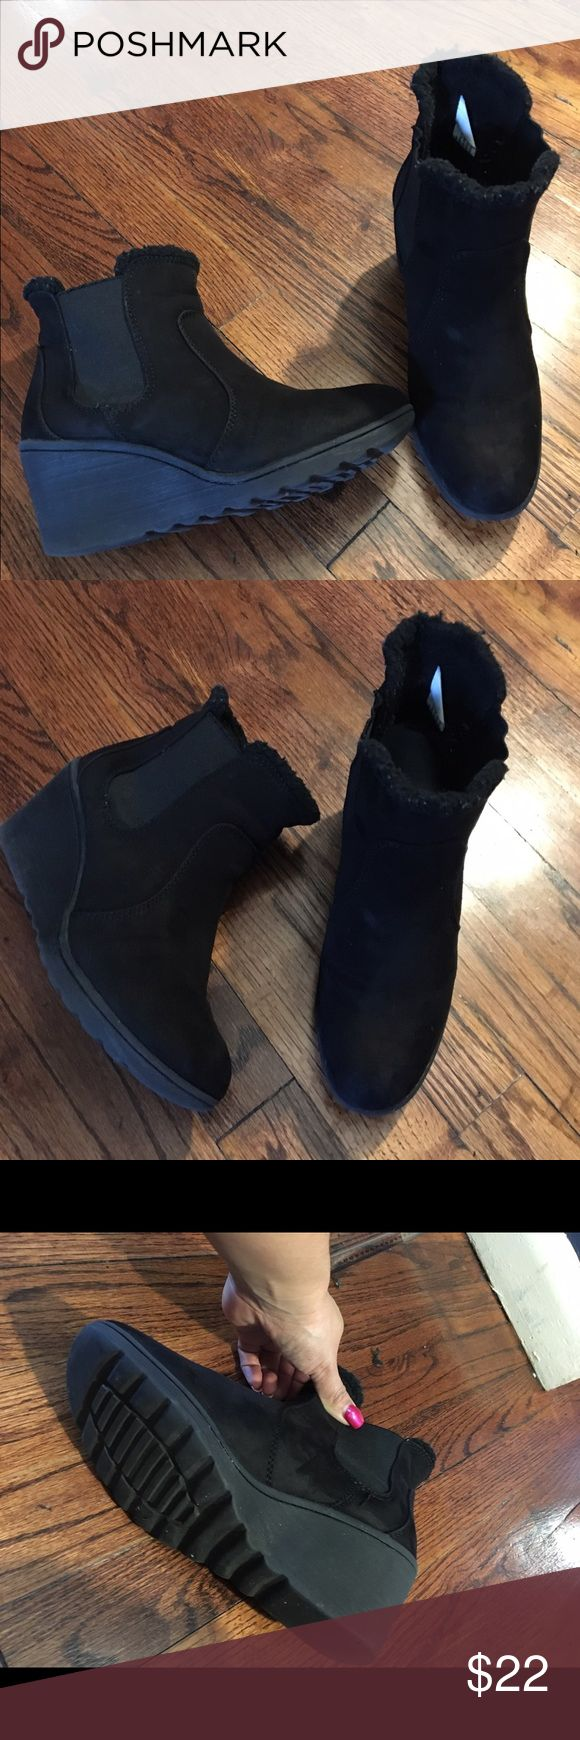 """Winter ankle booties Bought them for the holidays. They are very comfortable -- being a mom comfy heels are rare. Gently worn, but definitely not like new. They are size 7/5 but I'm a 6.5 and fit just well. Heels are 2.5"""" Tag as Urban Outfitters  for exposure only: Urban Outfitters Shoes Ankle Boots & Booties"""